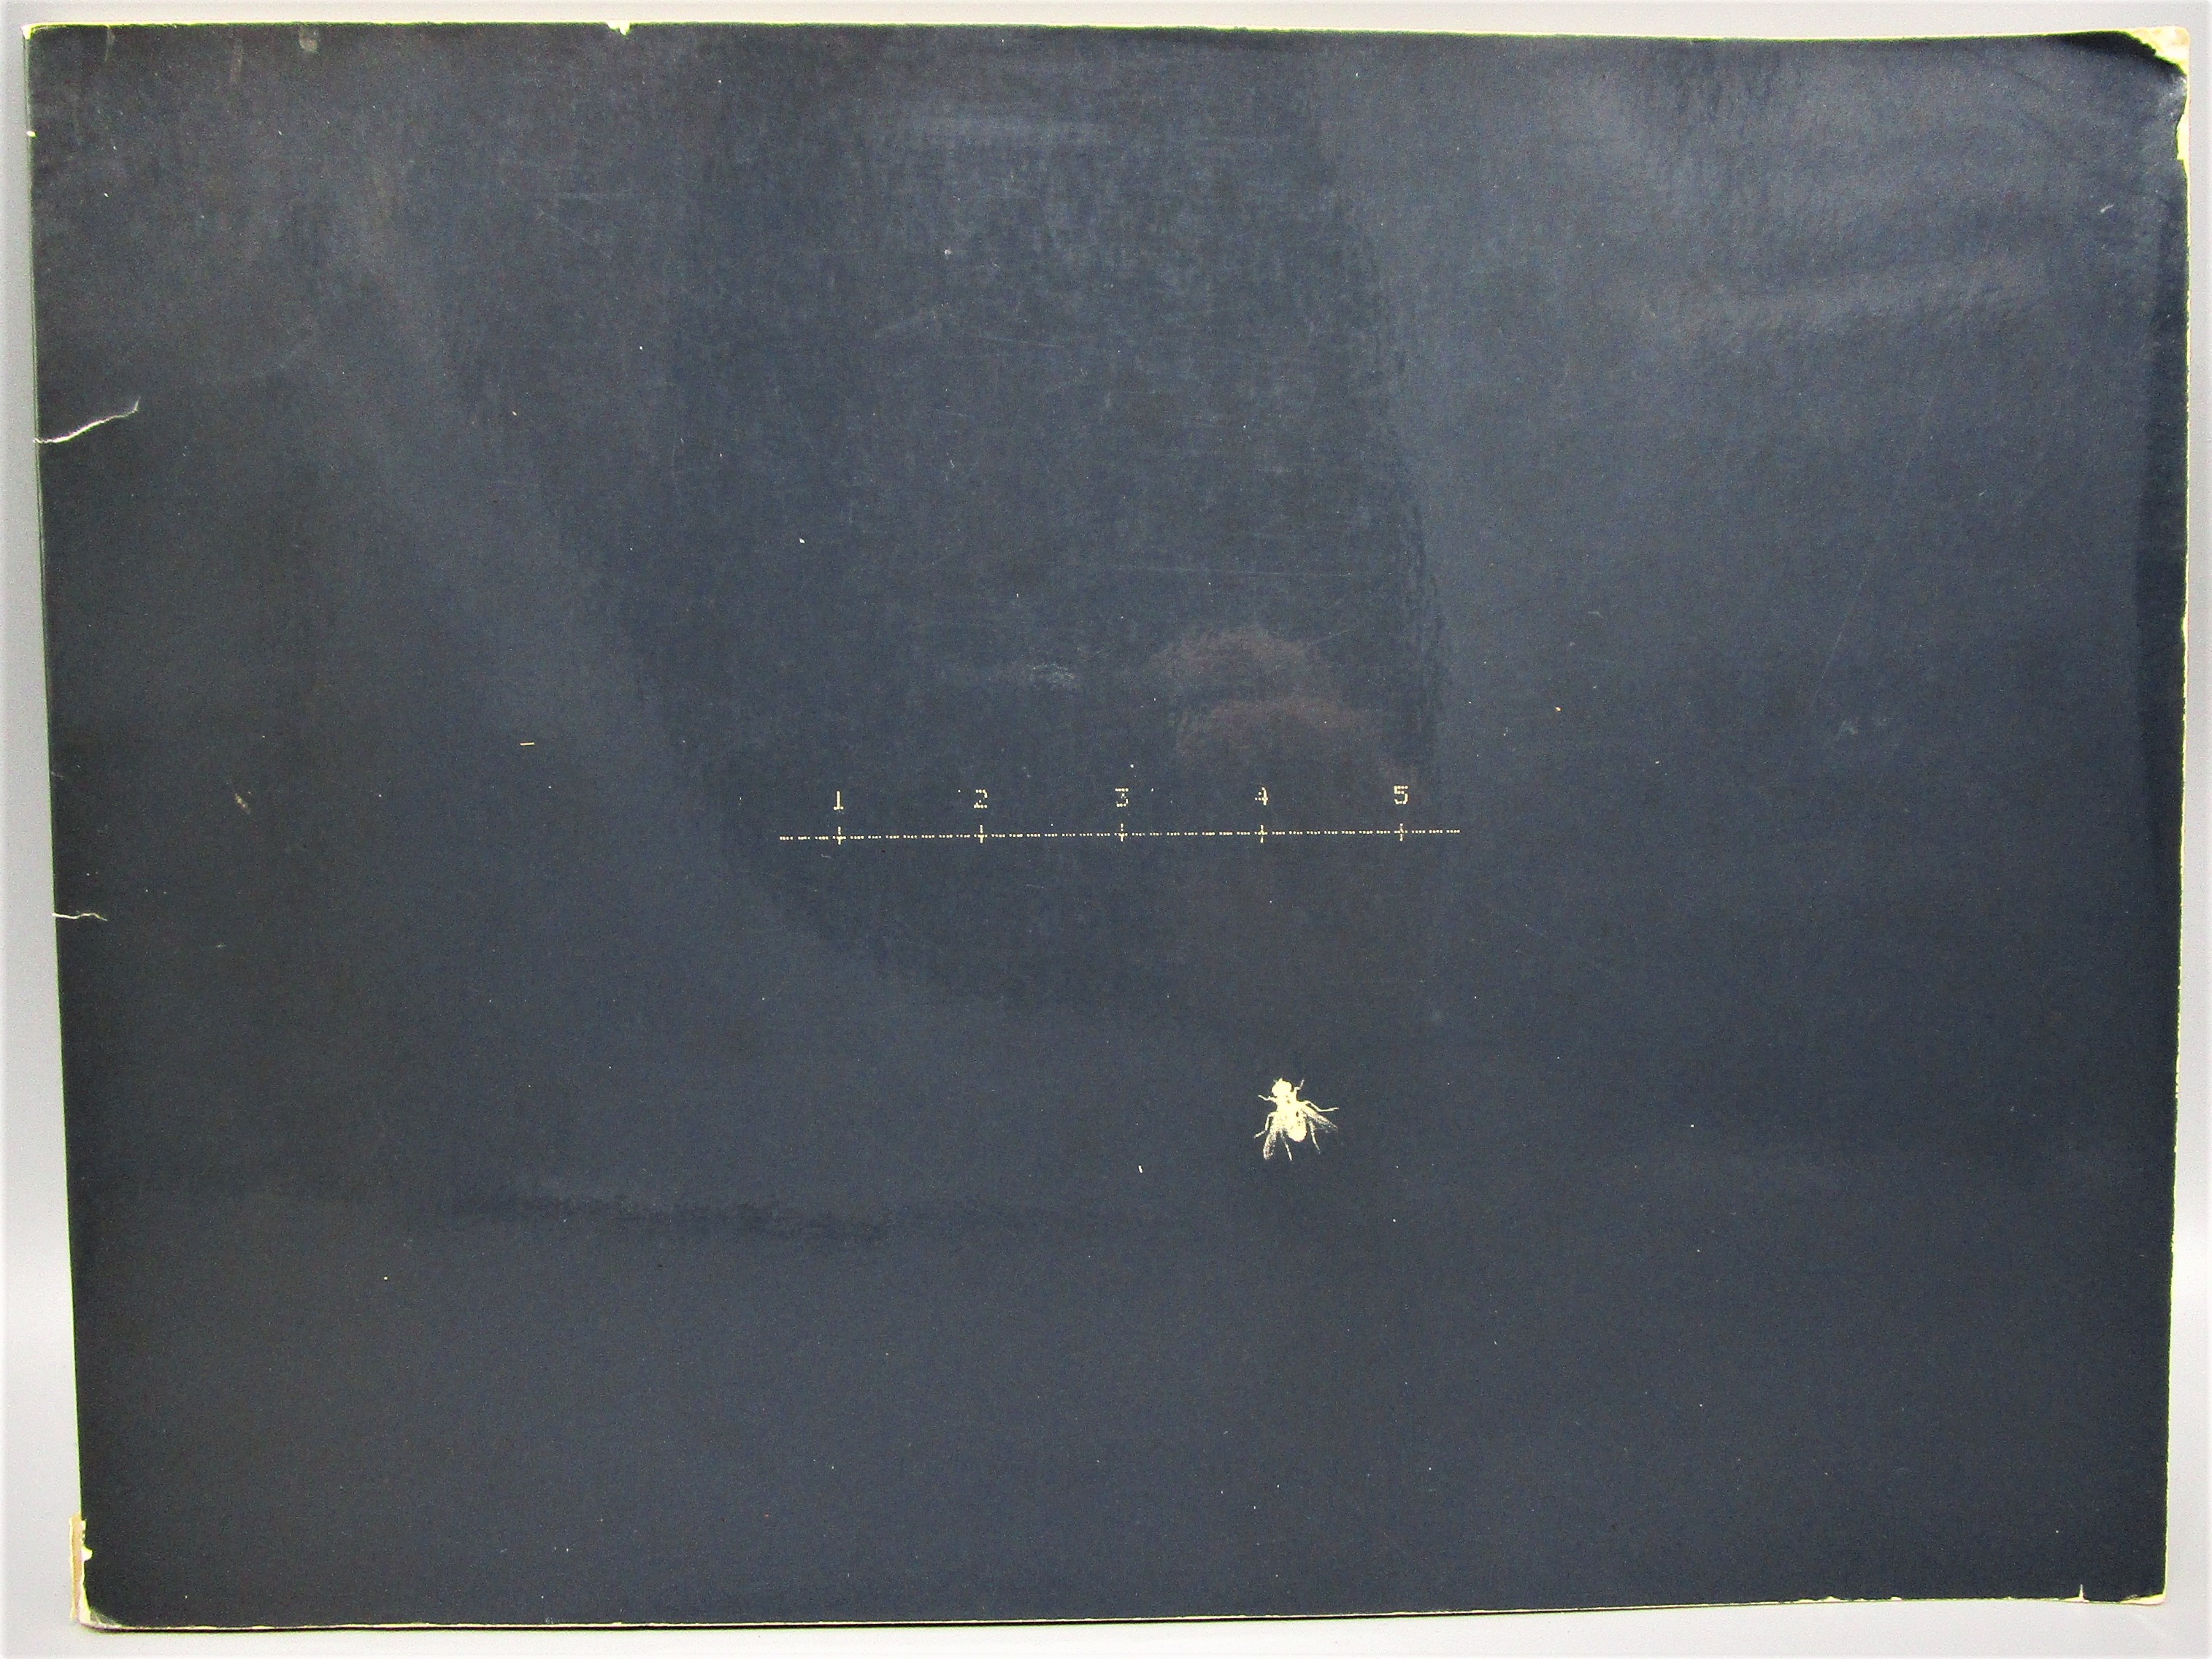 FIREFLIES, by William Larson - 1976 [Signed]